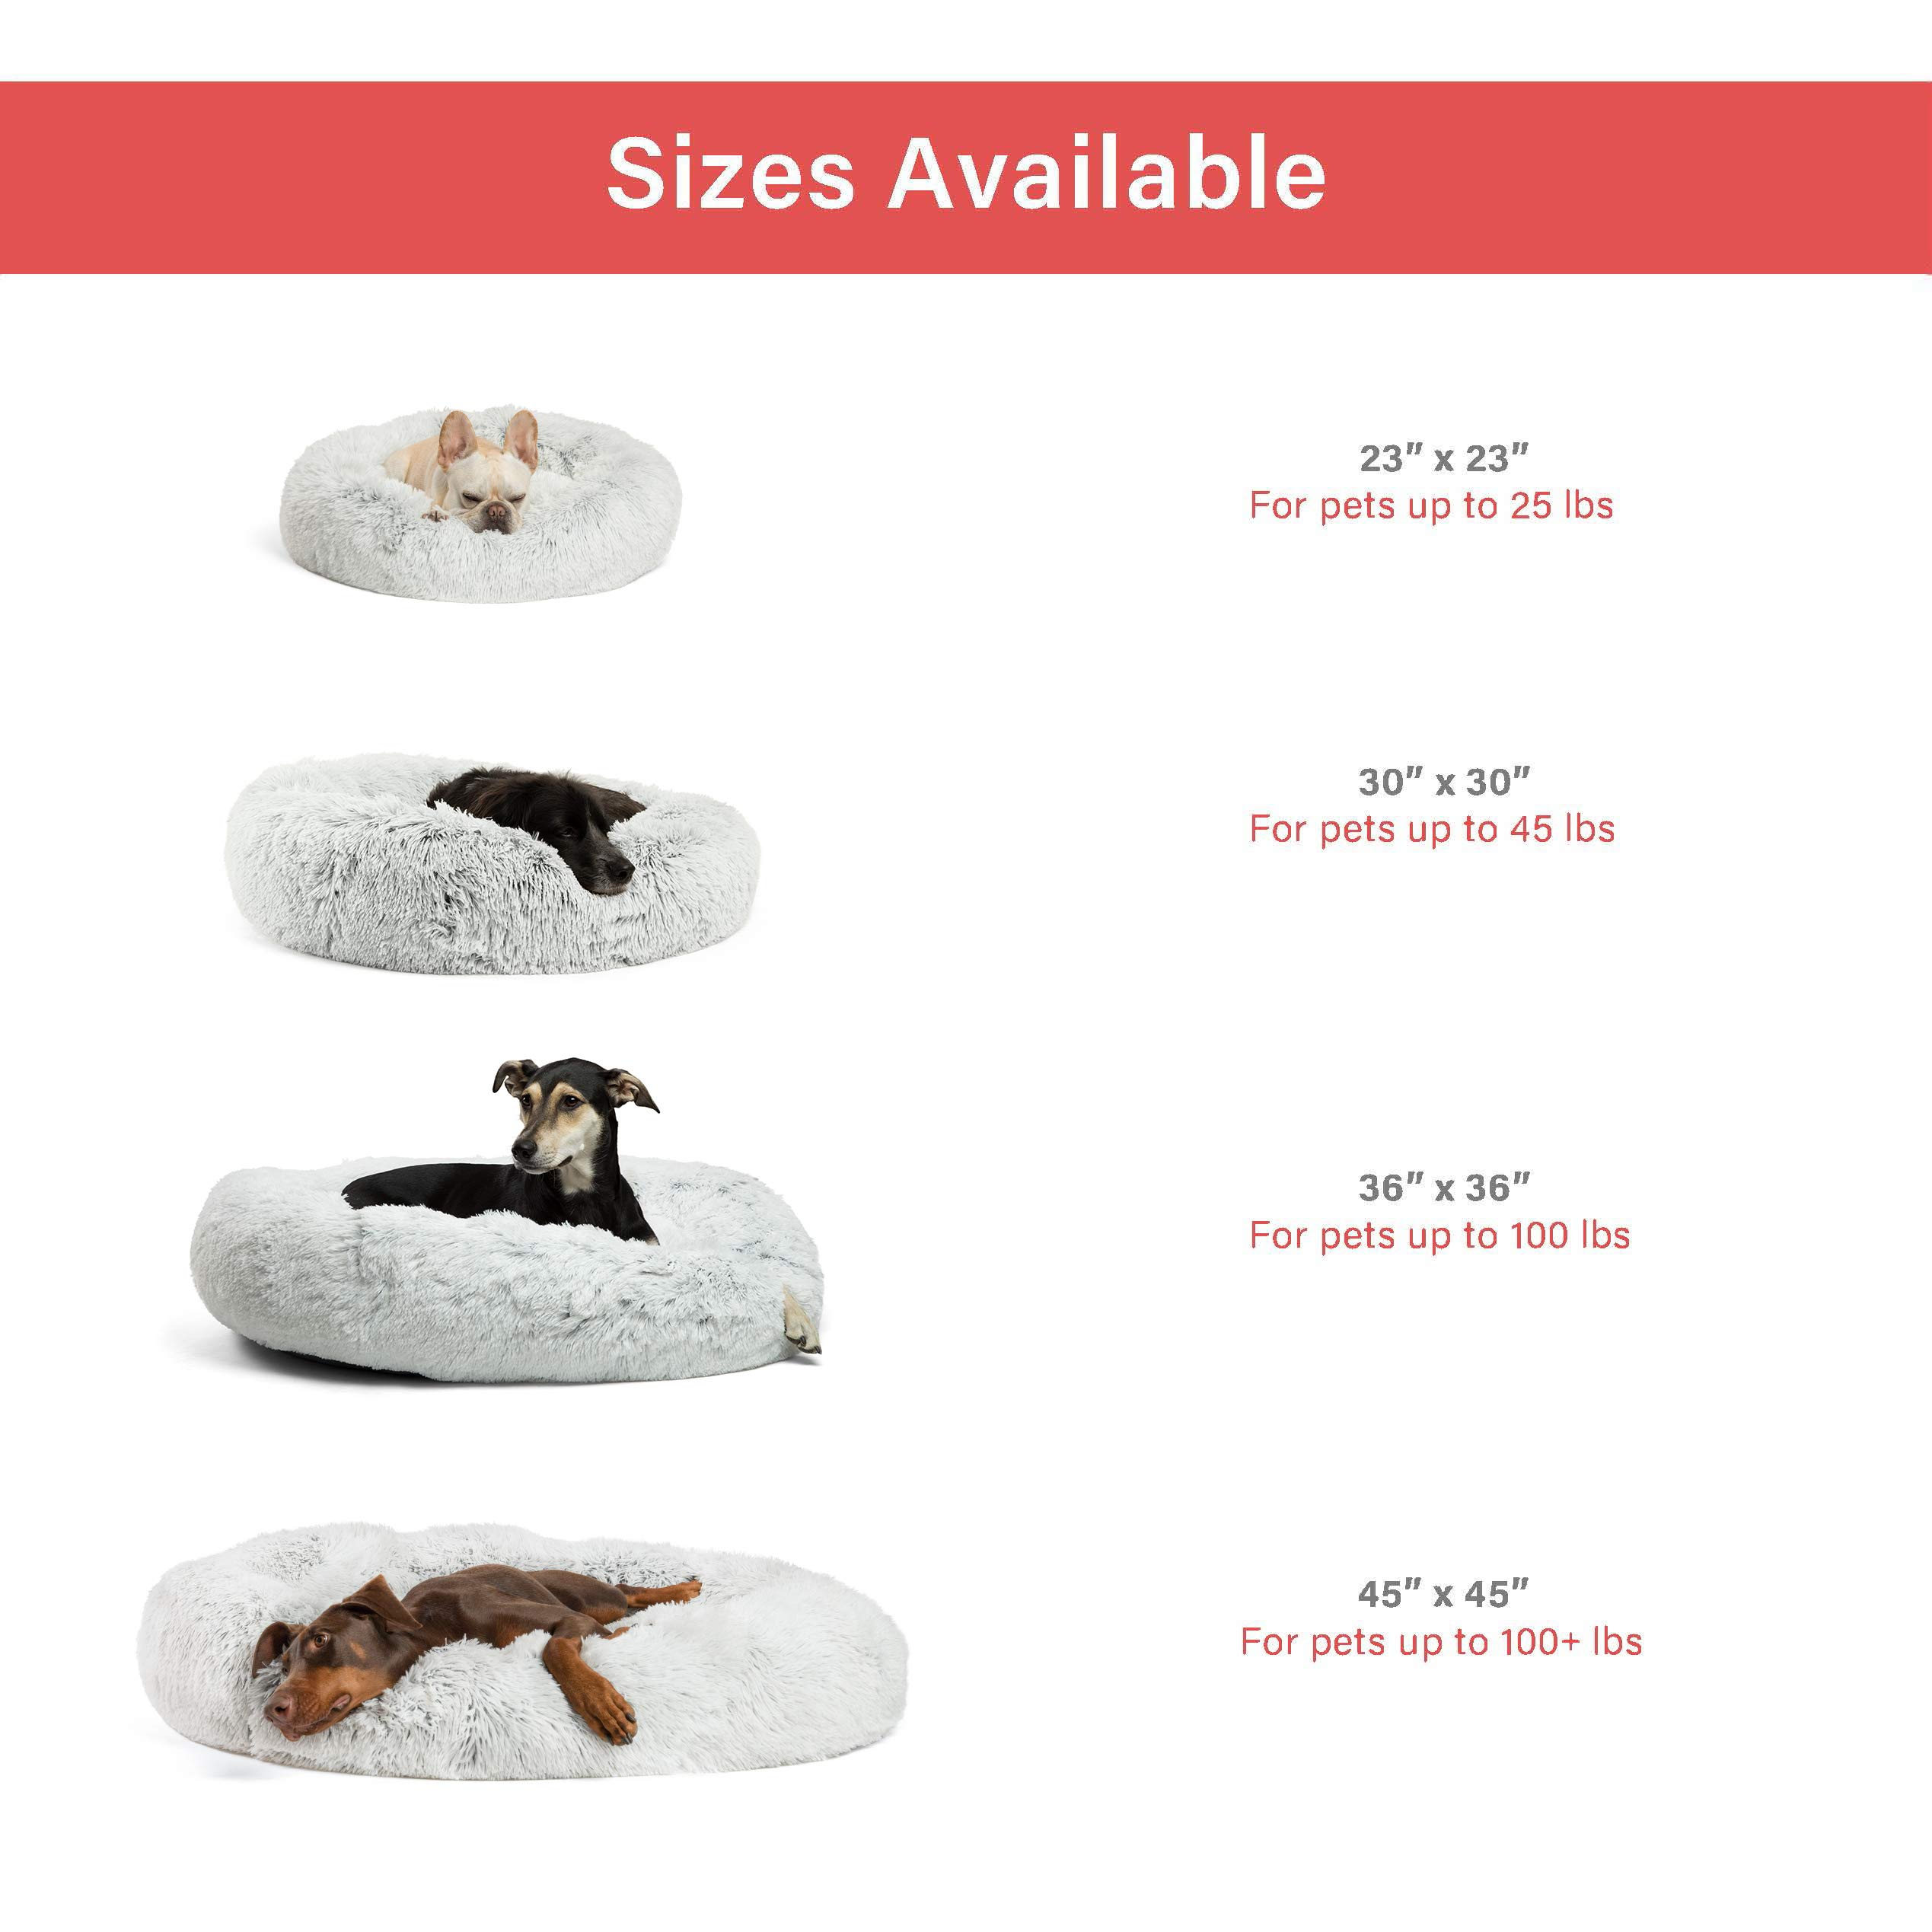 Best Friends by Sheri Luxury Shag Fur Donut Cuddler (30x30 Zippered, Frost) – Medium Round Dog & Cat Cushion Bed, Removable Shell, Warming, Cozy - Prime, Machine Washable - Medium Pets Up to 45lbs by Best Friends by Sheri (Image #6)